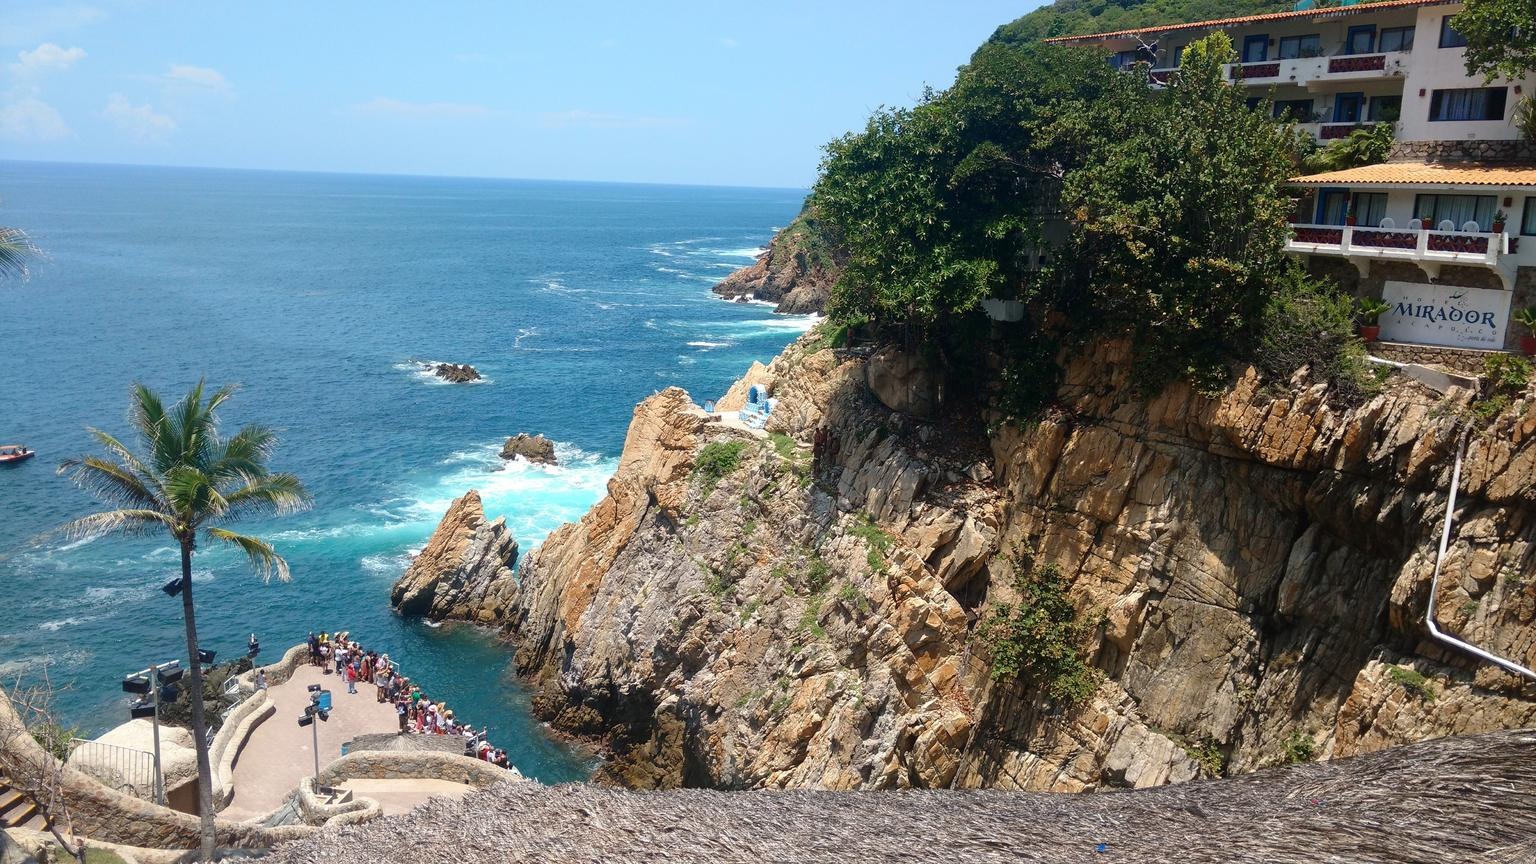 Acapulco 6-Hour Historical & Divers Tour with Municipal Market & Time For Lunch